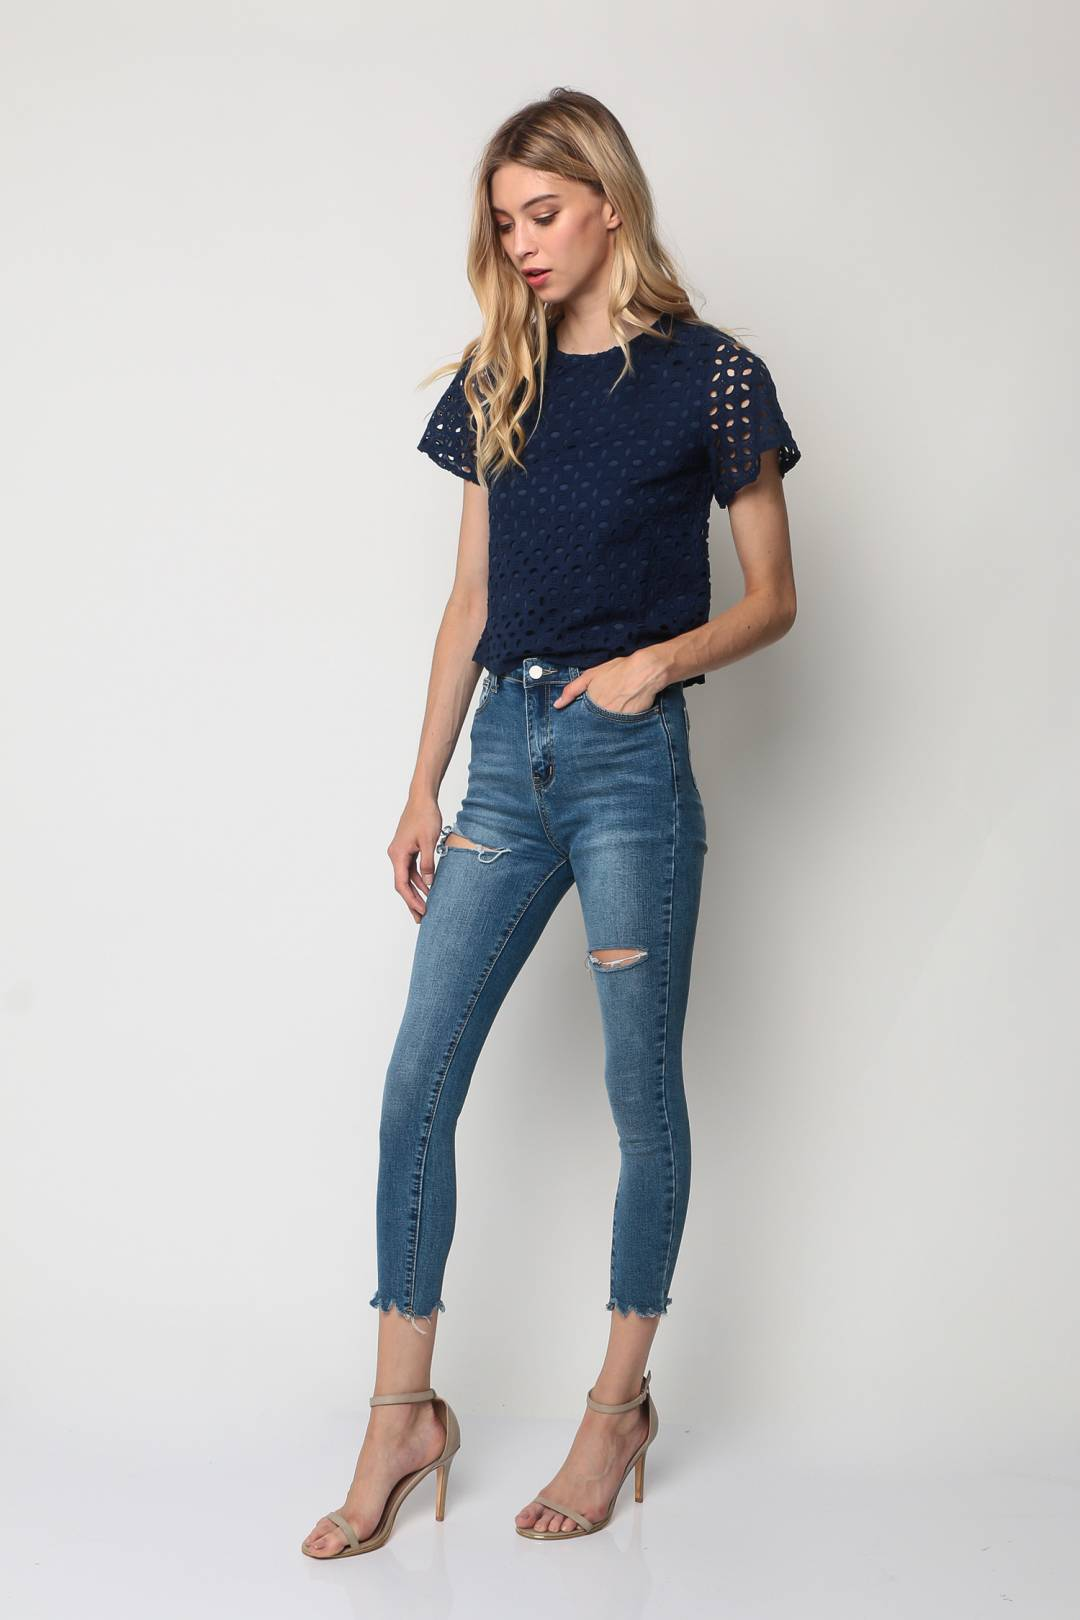 Crochet Lace Top (Navy)